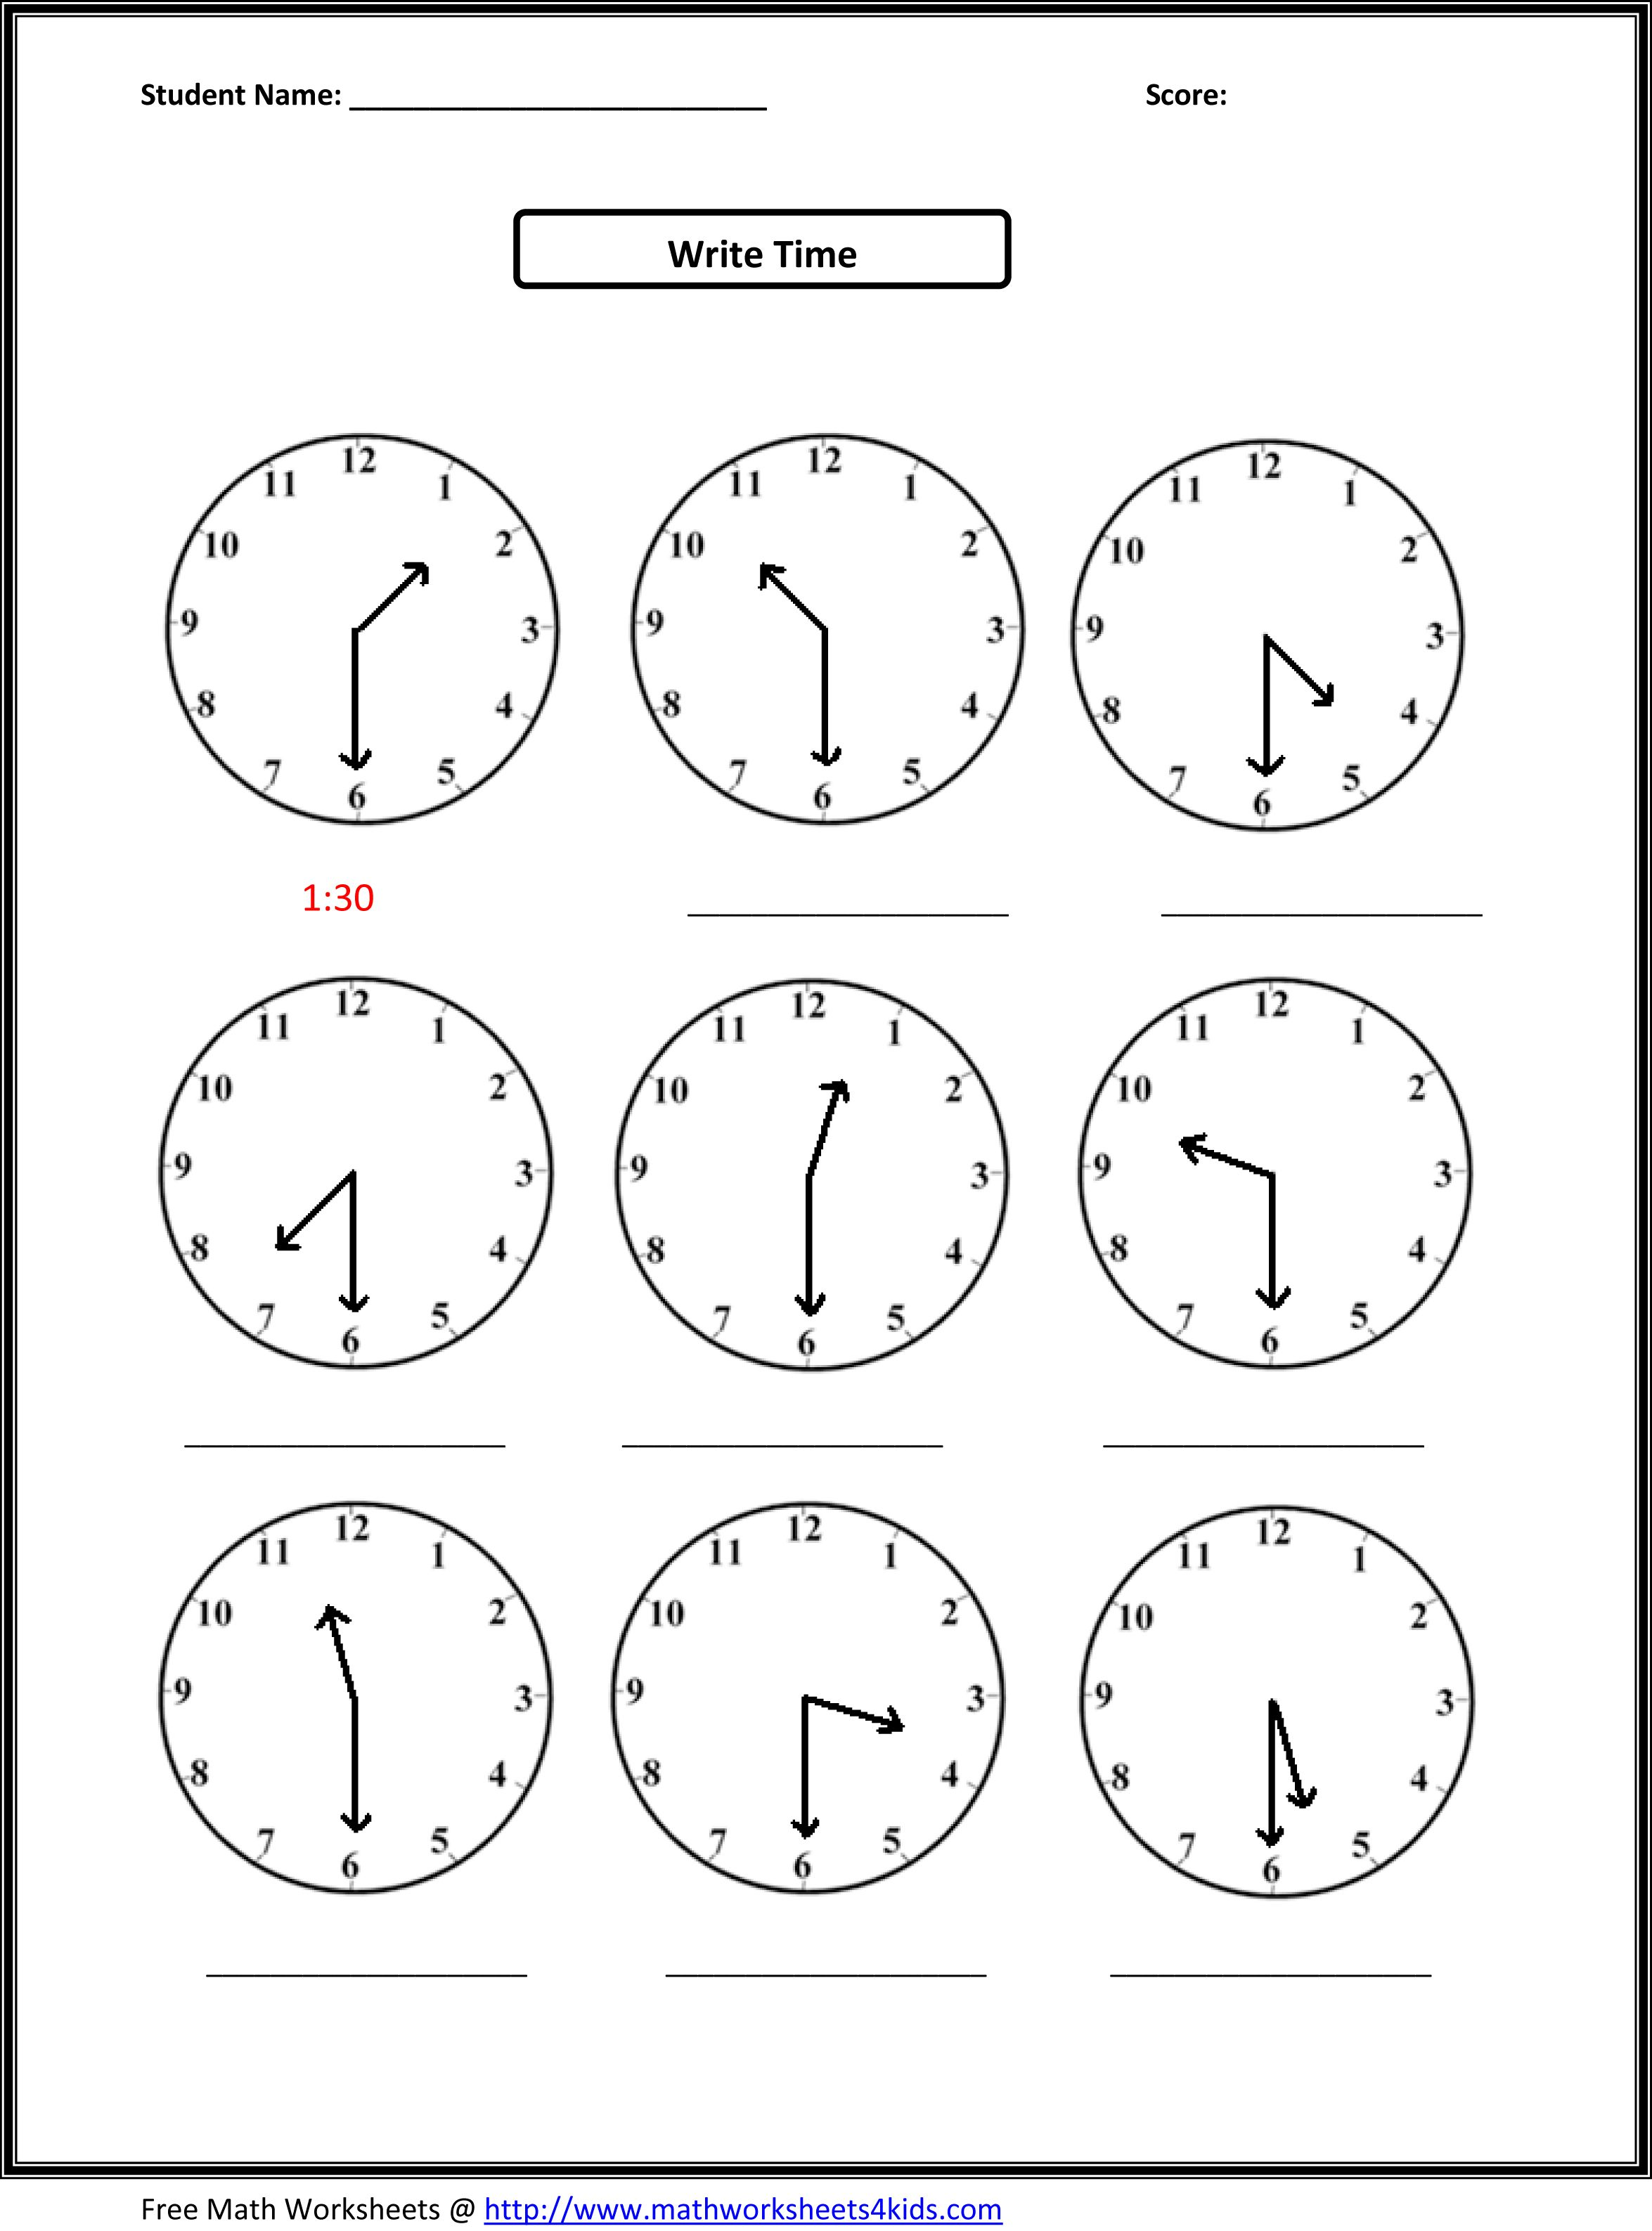 Weirdmailus  Nice Worksheet On Time For Grade   Reocurent With Gorgeous Free Printable Telling Time Worksheets Nd Grade  Reocurent With Enchanting Ks Literacy Worksheets Also Numerator Denominator Worksheet In Addition Multiplying Mixed Number Worksheets And Worksheet On Number Patterns As Well As Reading Comprehension Worksheet First Grade Additionally Ea Words Worksheet From Reocurentcom With Weirdmailus  Gorgeous Worksheet On Time For Grade   Reocurent With Enchanting Free Printable Telling Time Worksheets Nd Grade  Reocurent And Nice Ks Literacy Worksheets Also Numerator Denominator Worksheet In Addition Multiplying Mixed Number Worksheets From Reocurentcom